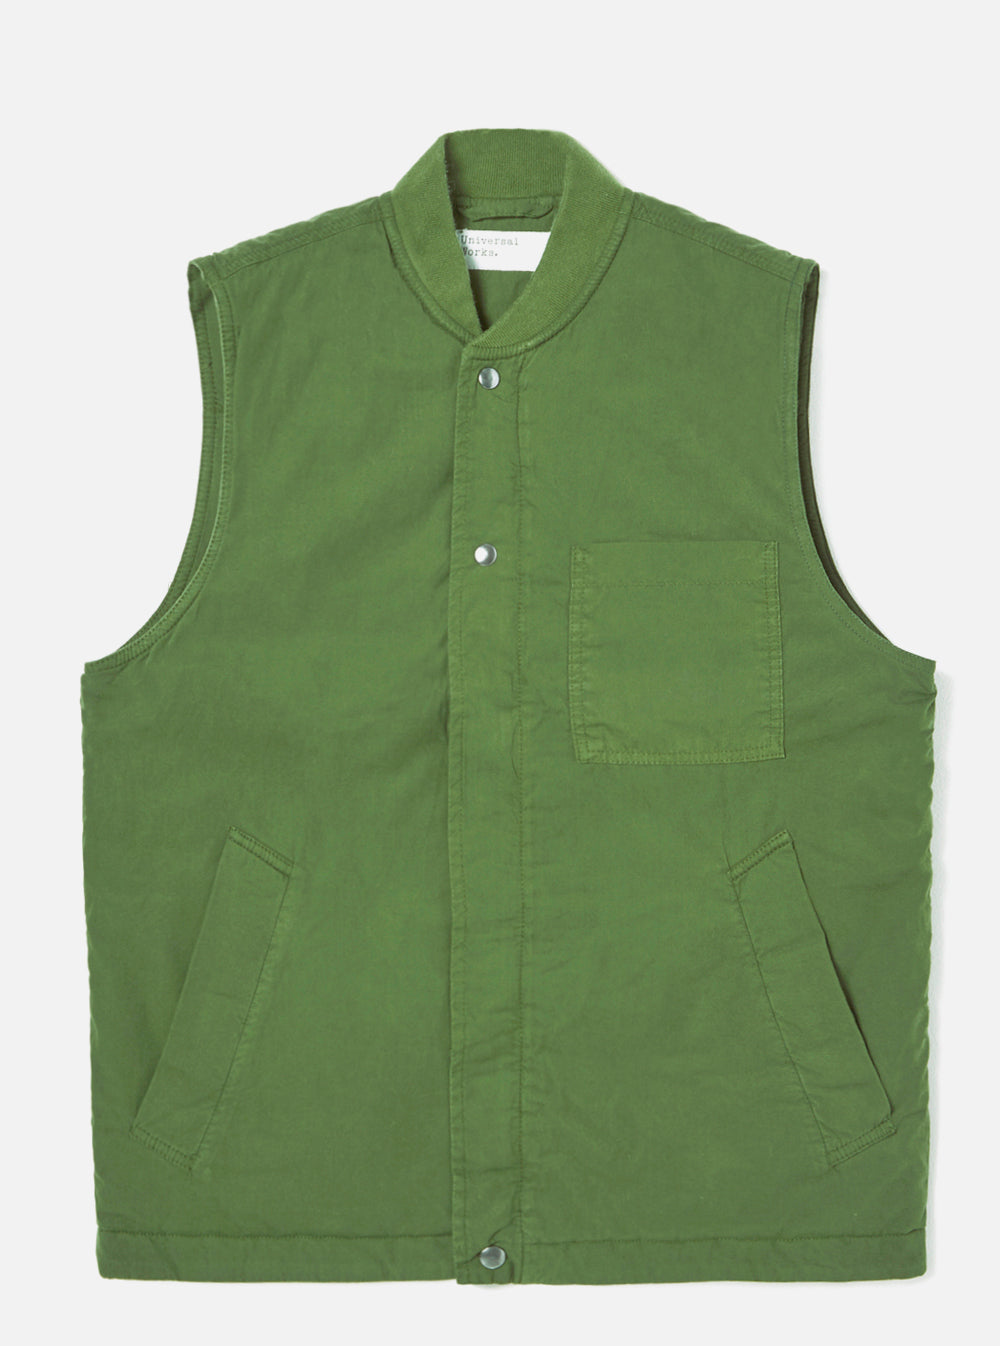 Universal Works Carlton Gilet in Green Quilt Insulated Cotton